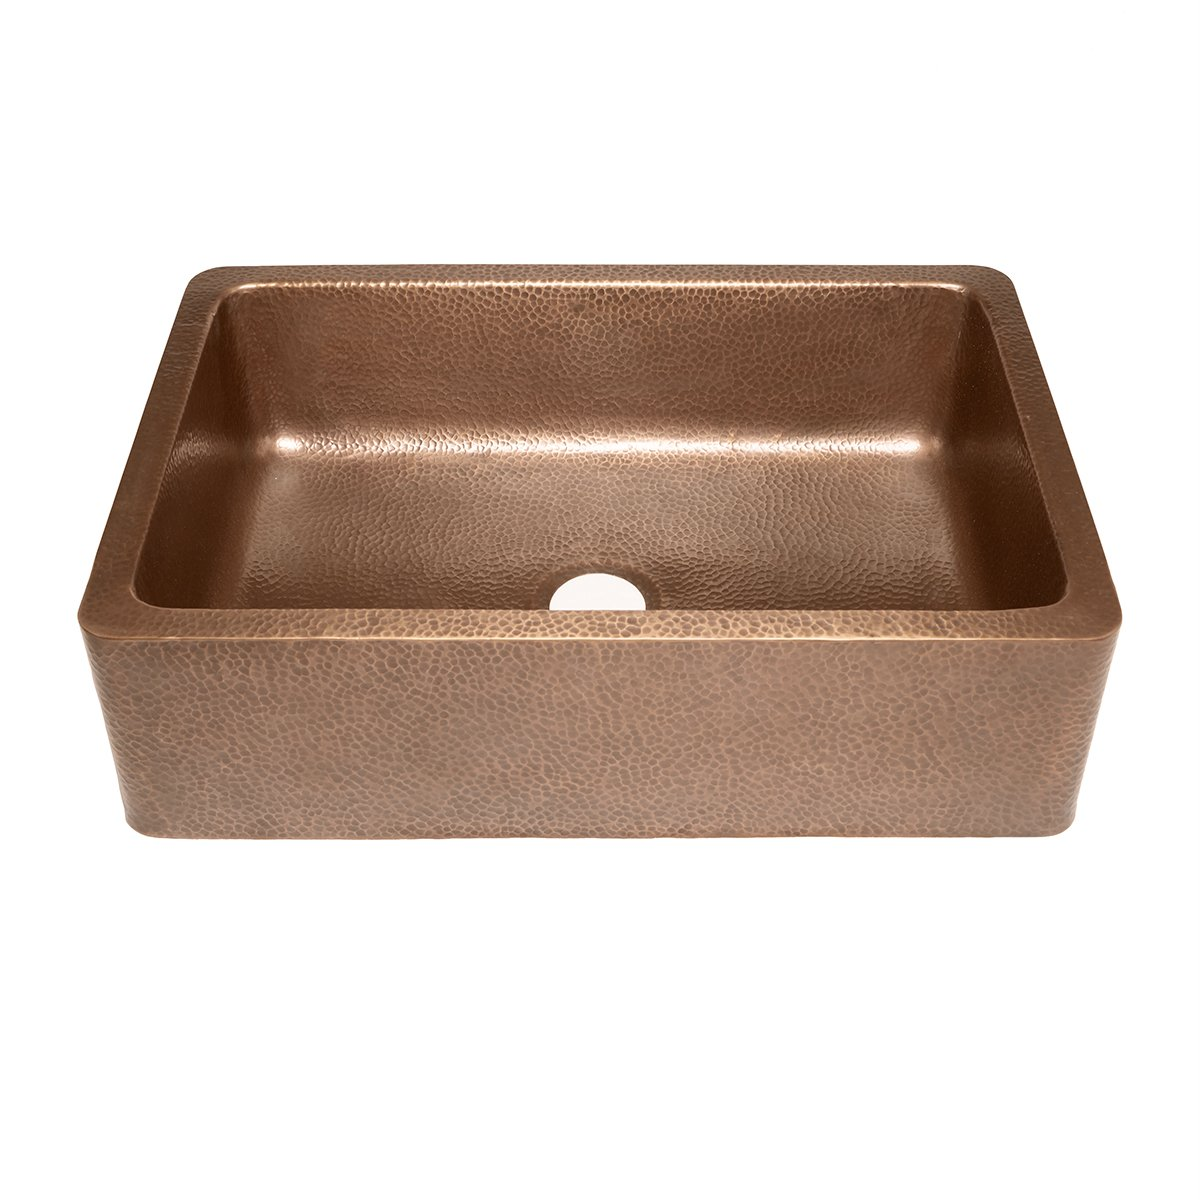 adams farmhouse apron front handmade copper kitchen sink 33 in single bowl in antique copper single bowl sinks amazoncom - Farmhouse Kitchen Sinks